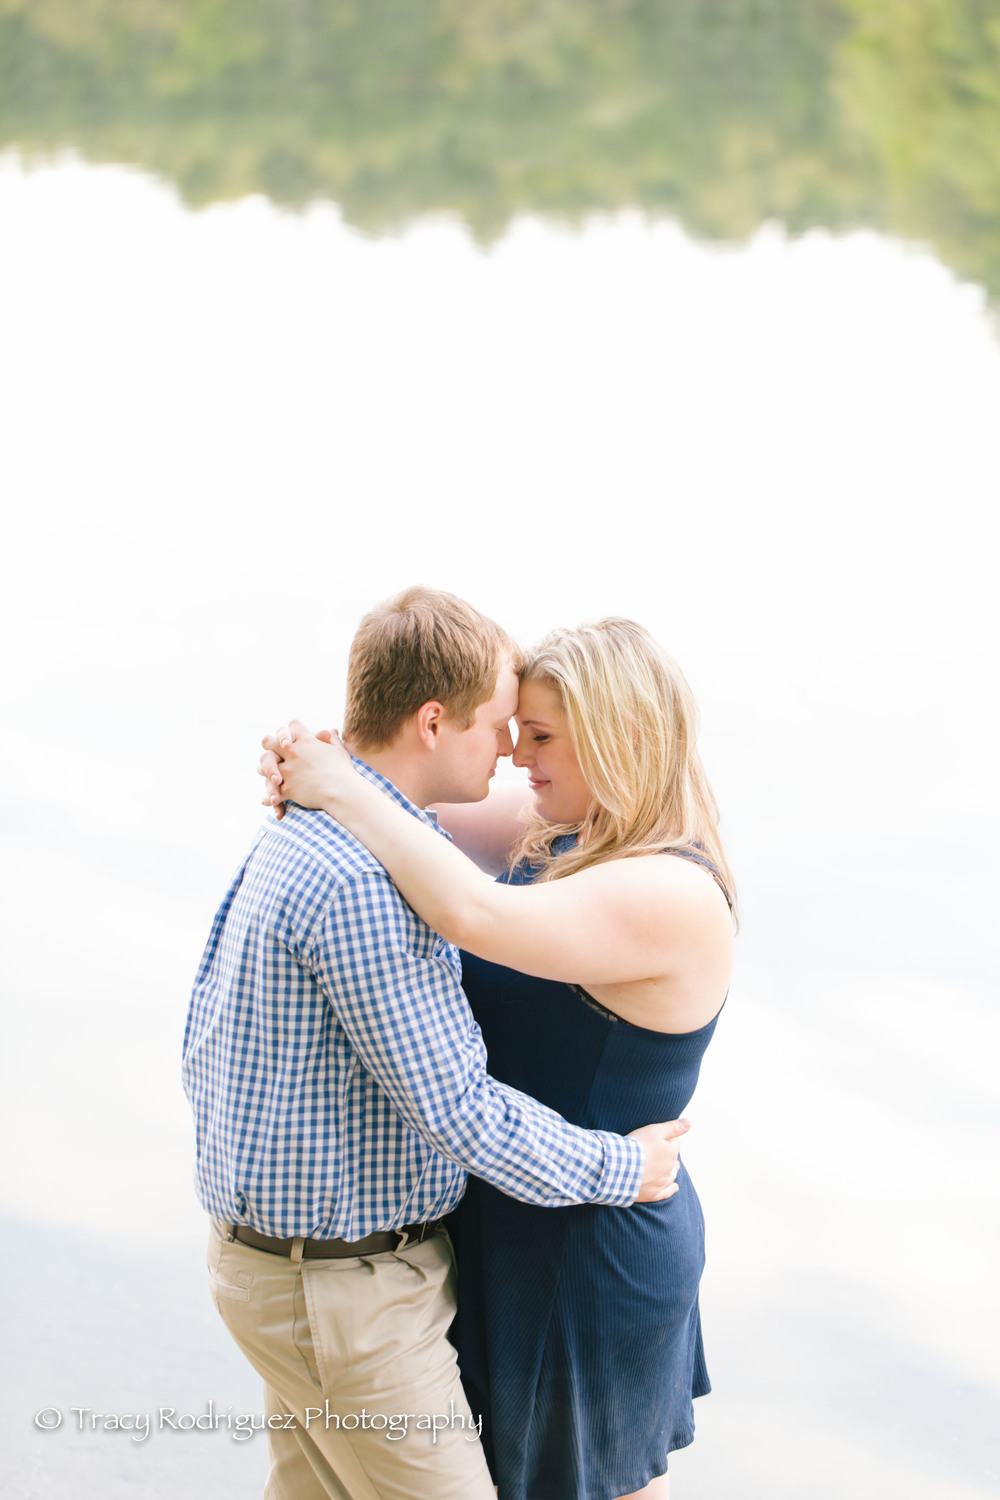 TracyRodriguezPhotography-Engagement-LowRes-76.jpg